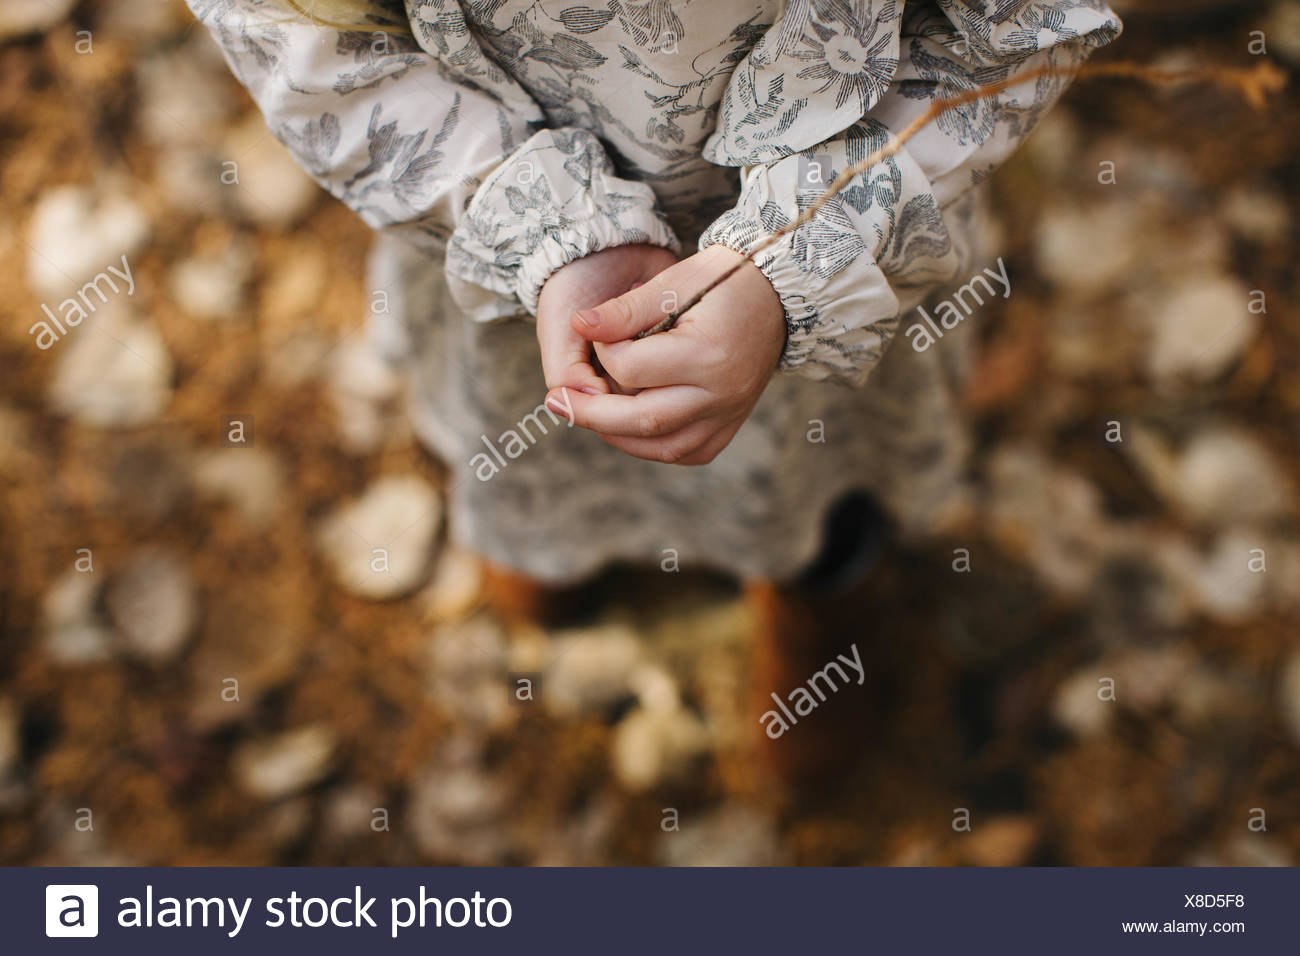 Girl holding twig in forest - Stock Image